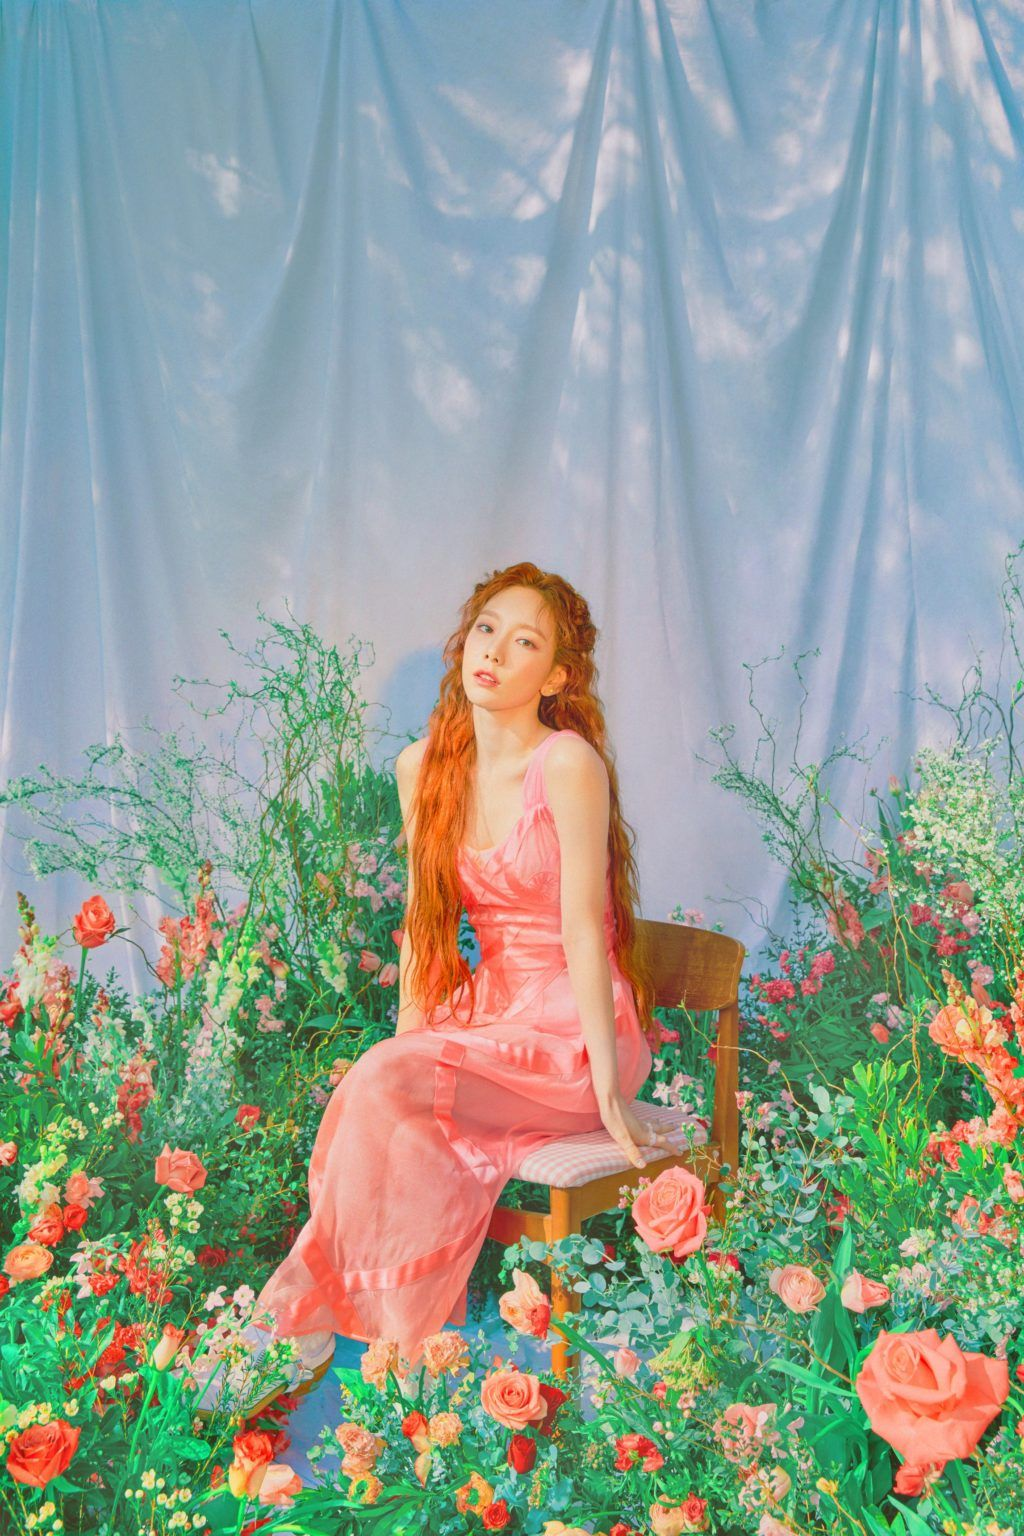 TAEYEON Happy Teaser Photos (HD/HR) in 2020 | Taeyeon, Girls' generation taeyeon, Girls generation